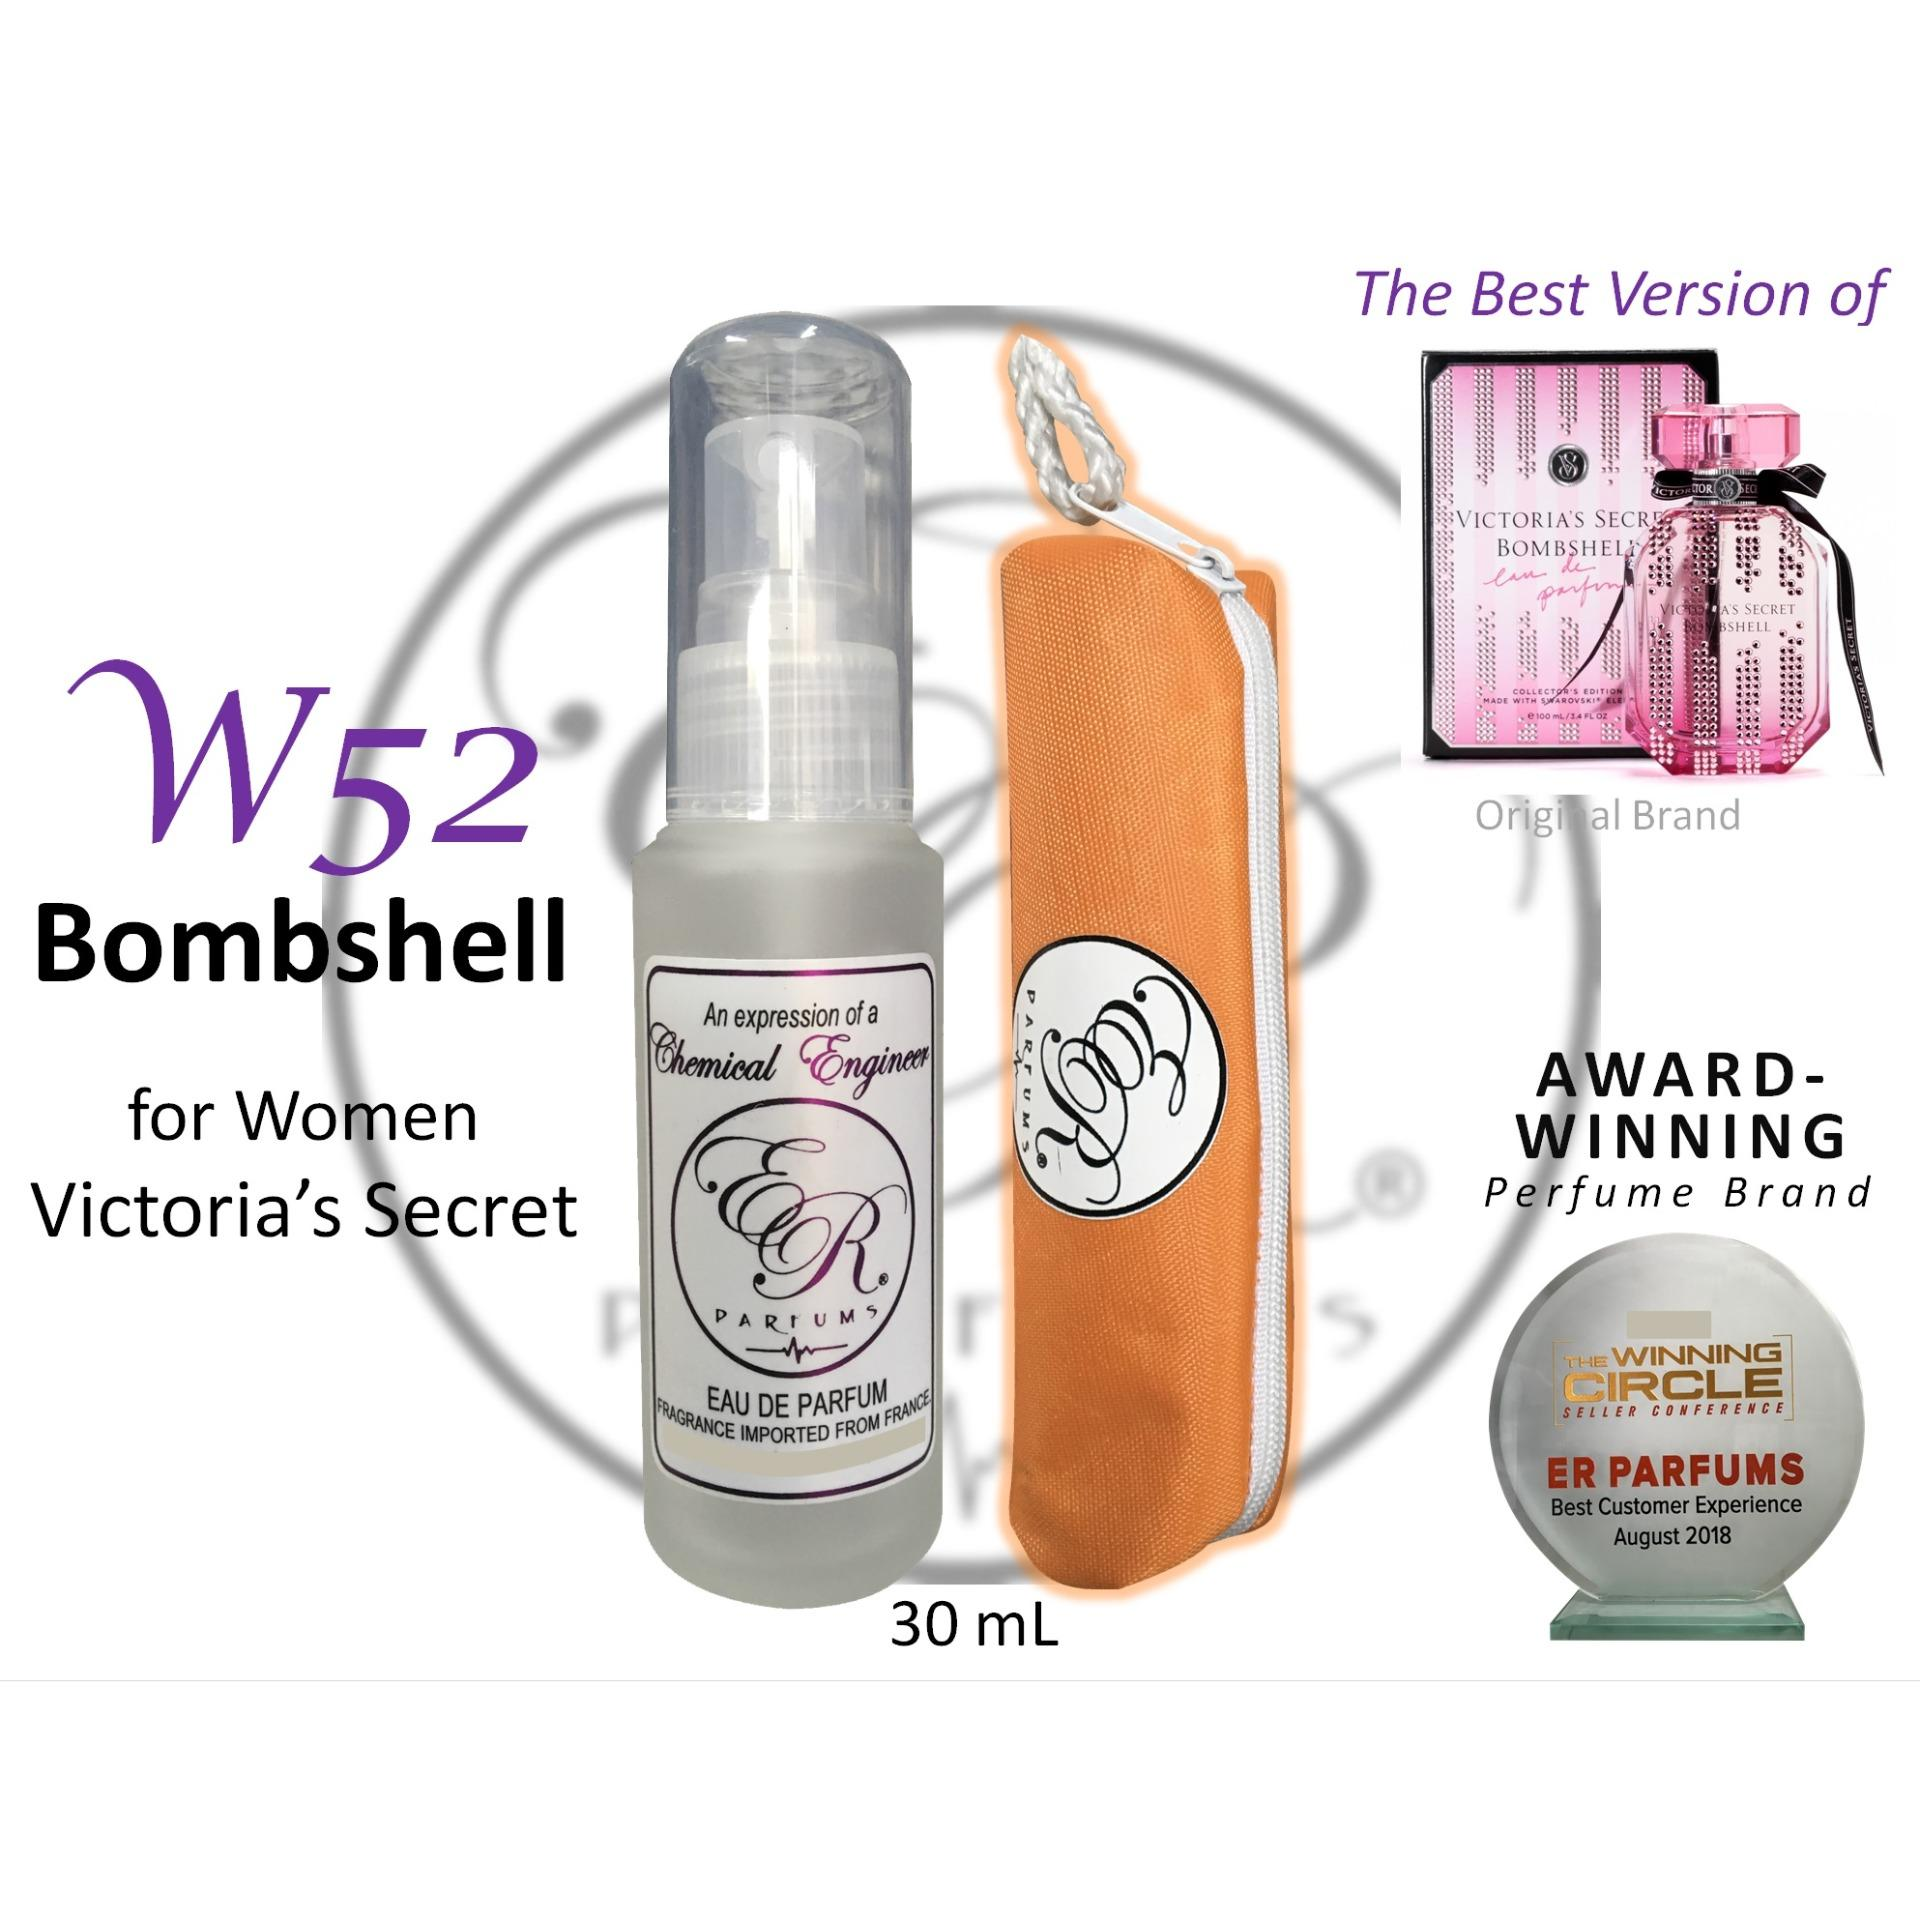 2f516ee51d7f ER PARFUMS W52 Bombshell for Women by Victoria s Secret 1 piece 30 mL  perfume with free